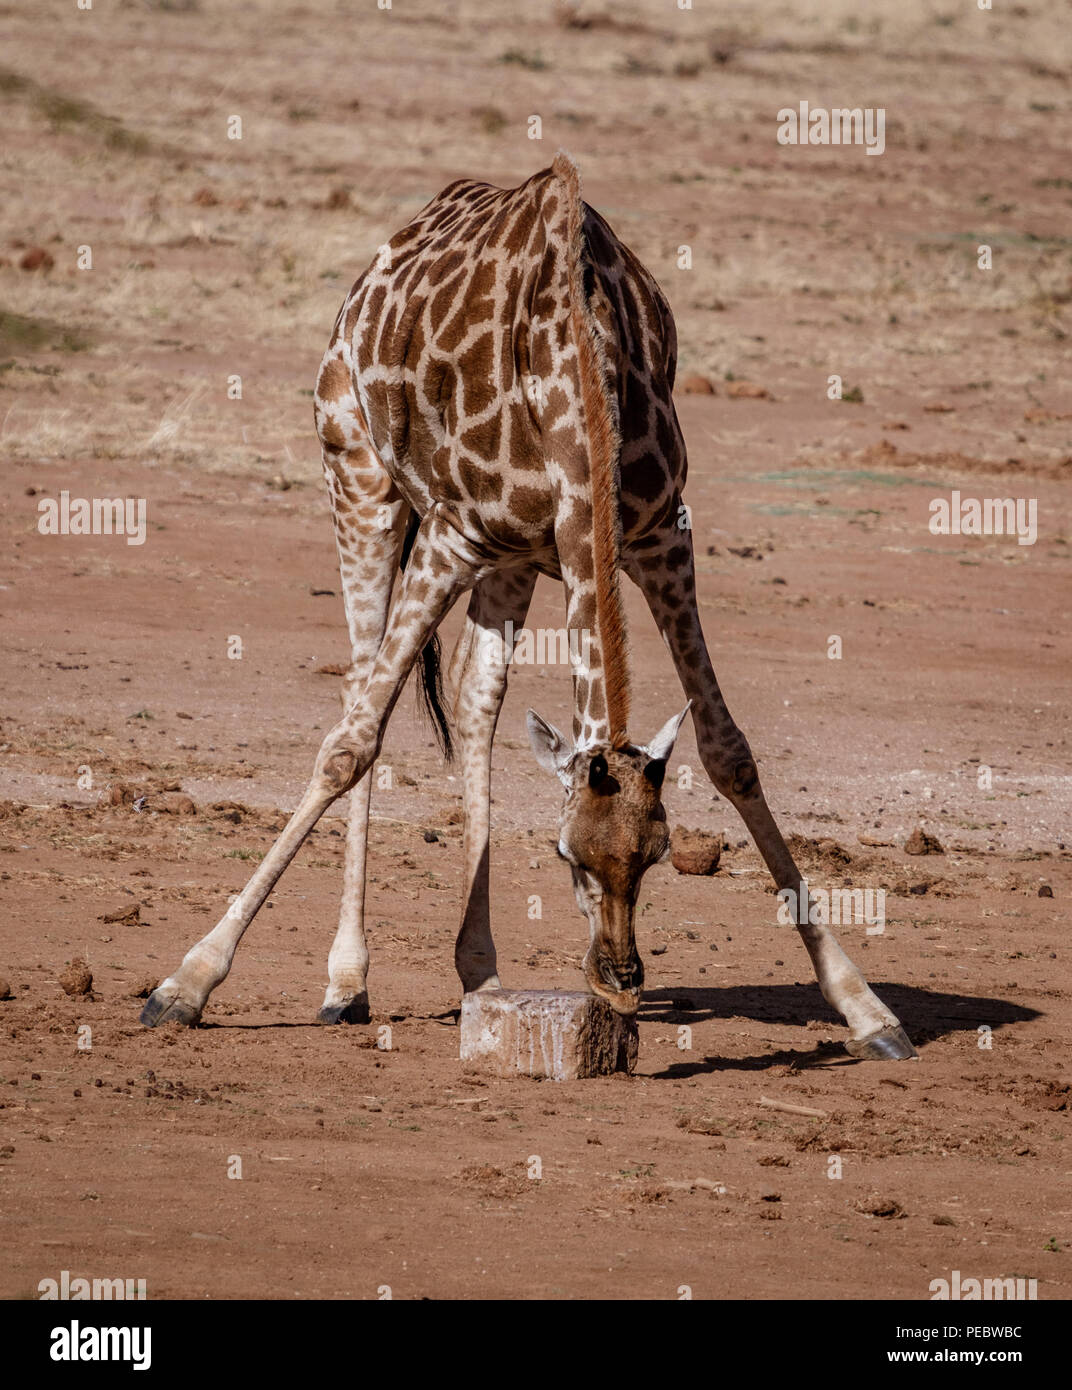 Giraffe bends over to lick the salt off a rock in Namibia - Stock Image